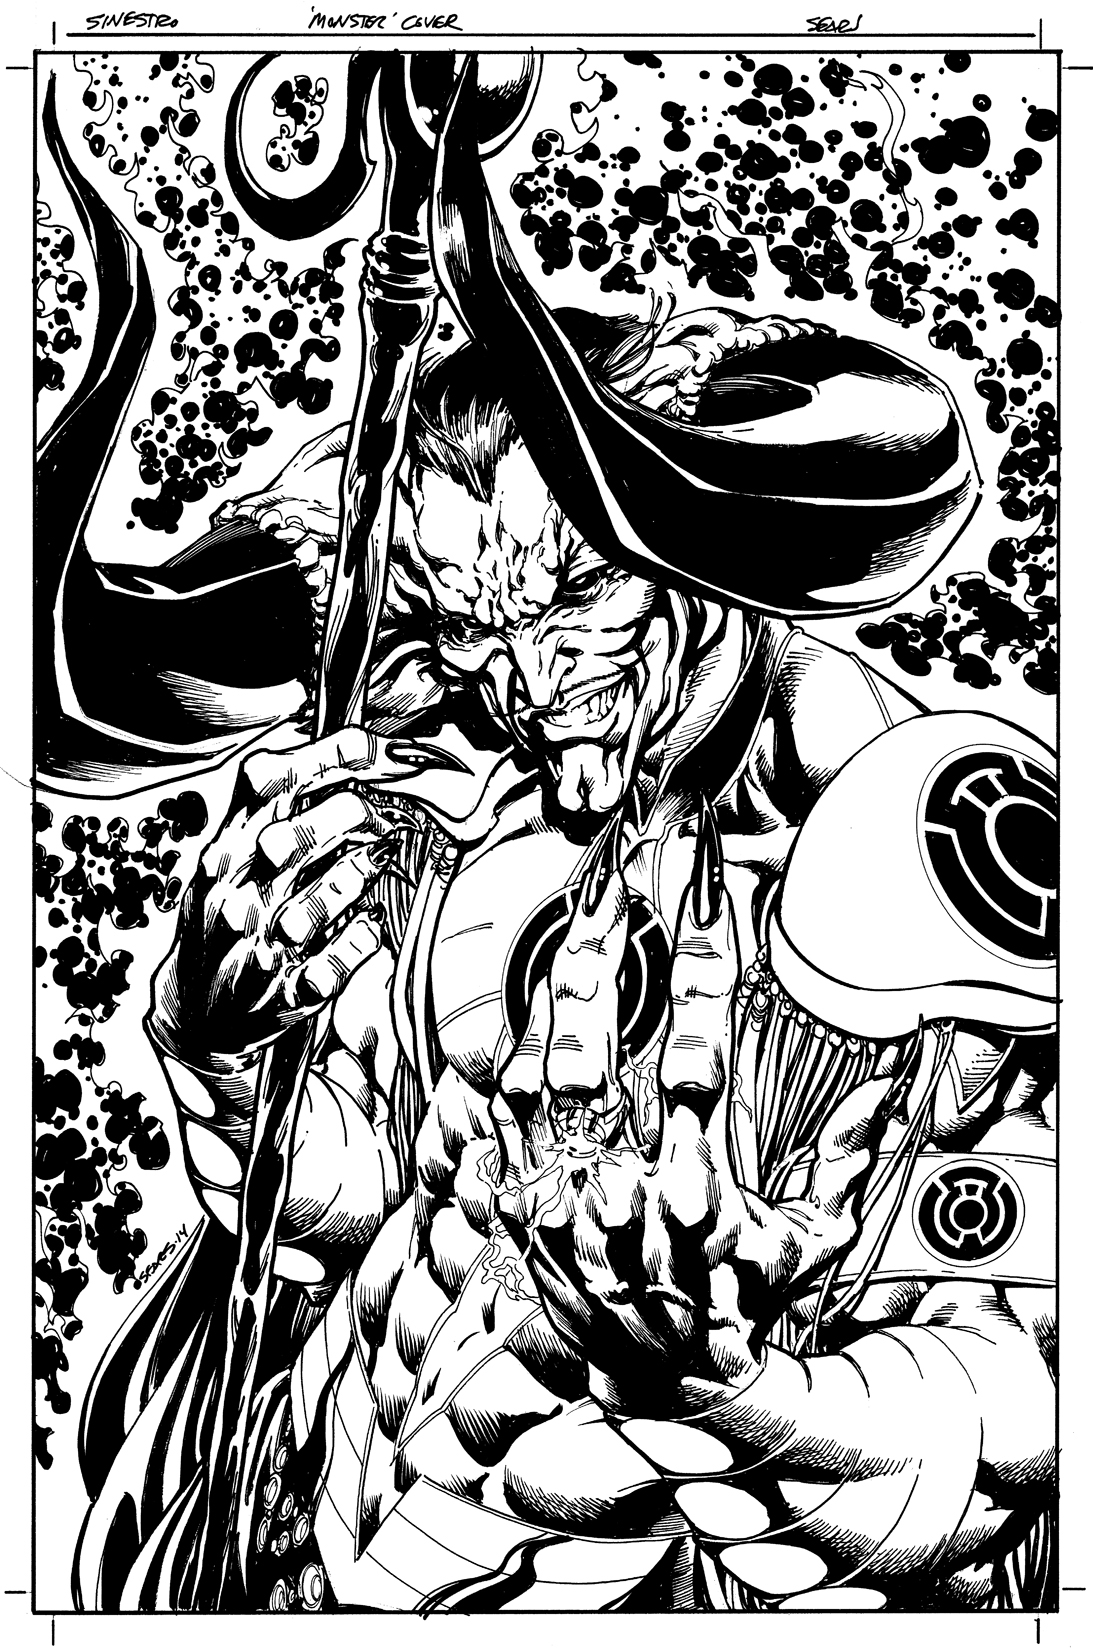 Sinestro_MonsterCover_Inks_Sears_150dpi.